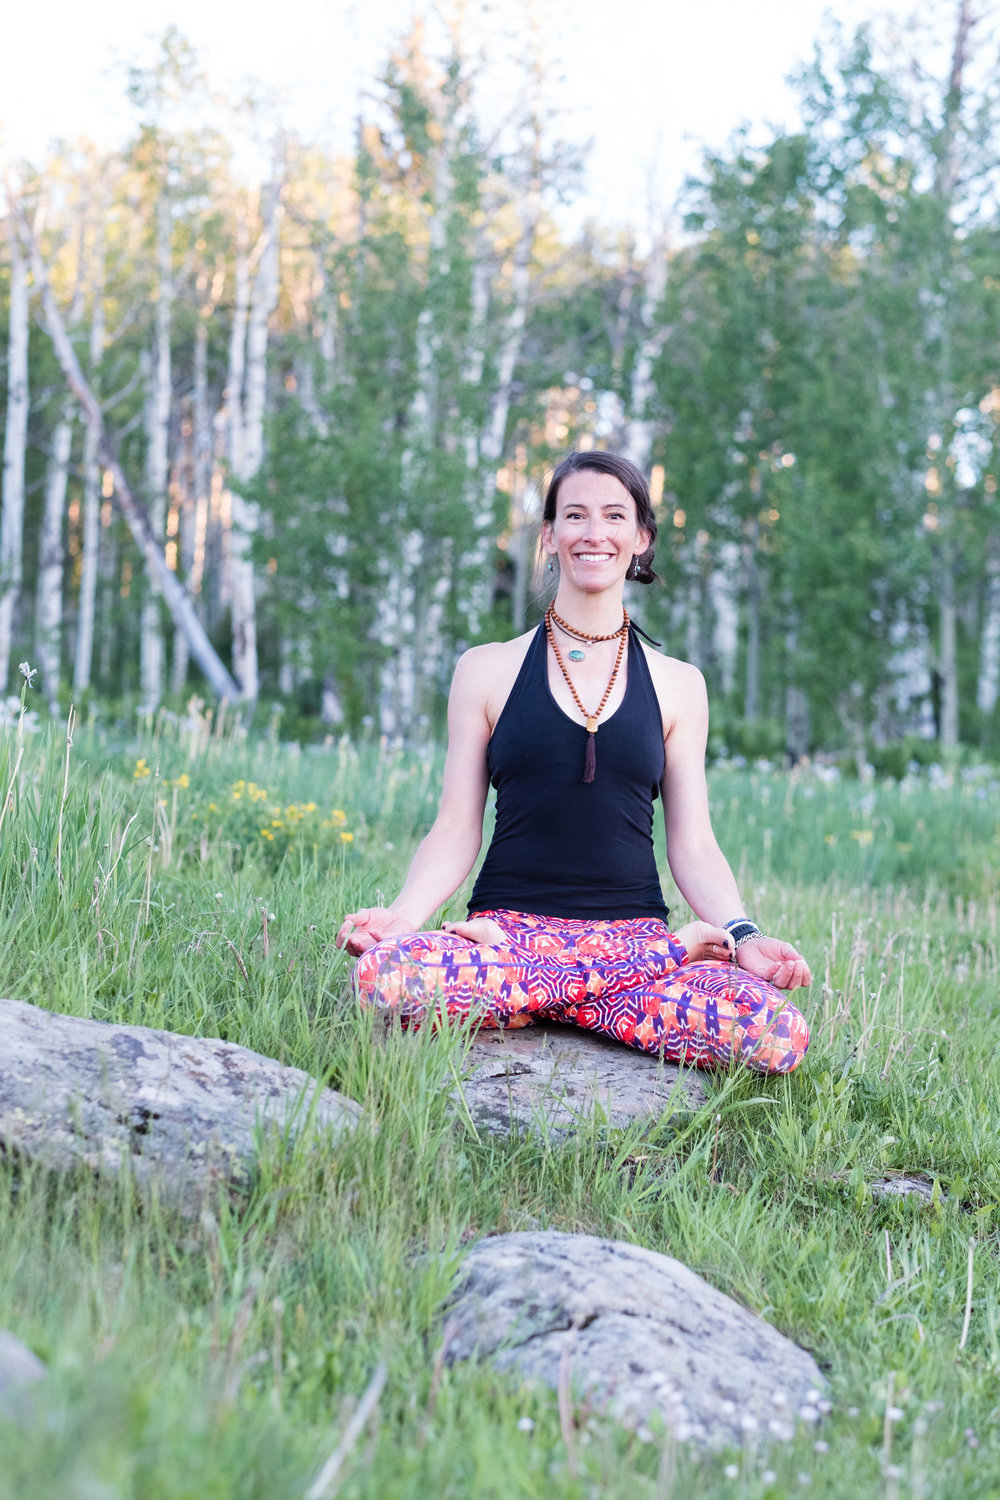 Yoga with K2: About Kristina, Hatha Flow, Vinyassa Flow, Yin Yoga Classes in Basalt Colorado